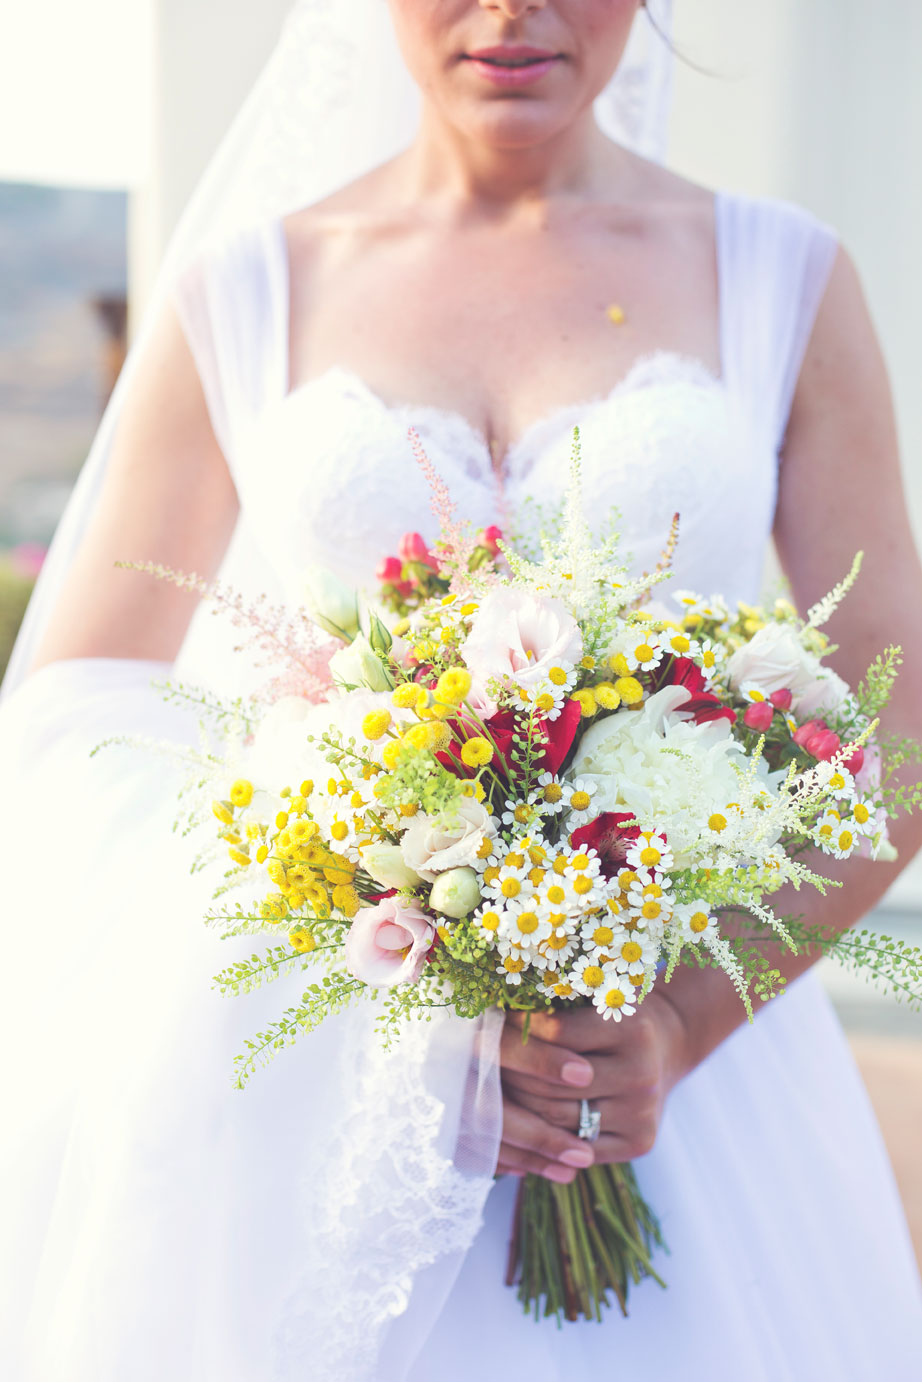 Unforgettable Wedding Bouquets by Fiorello Photography